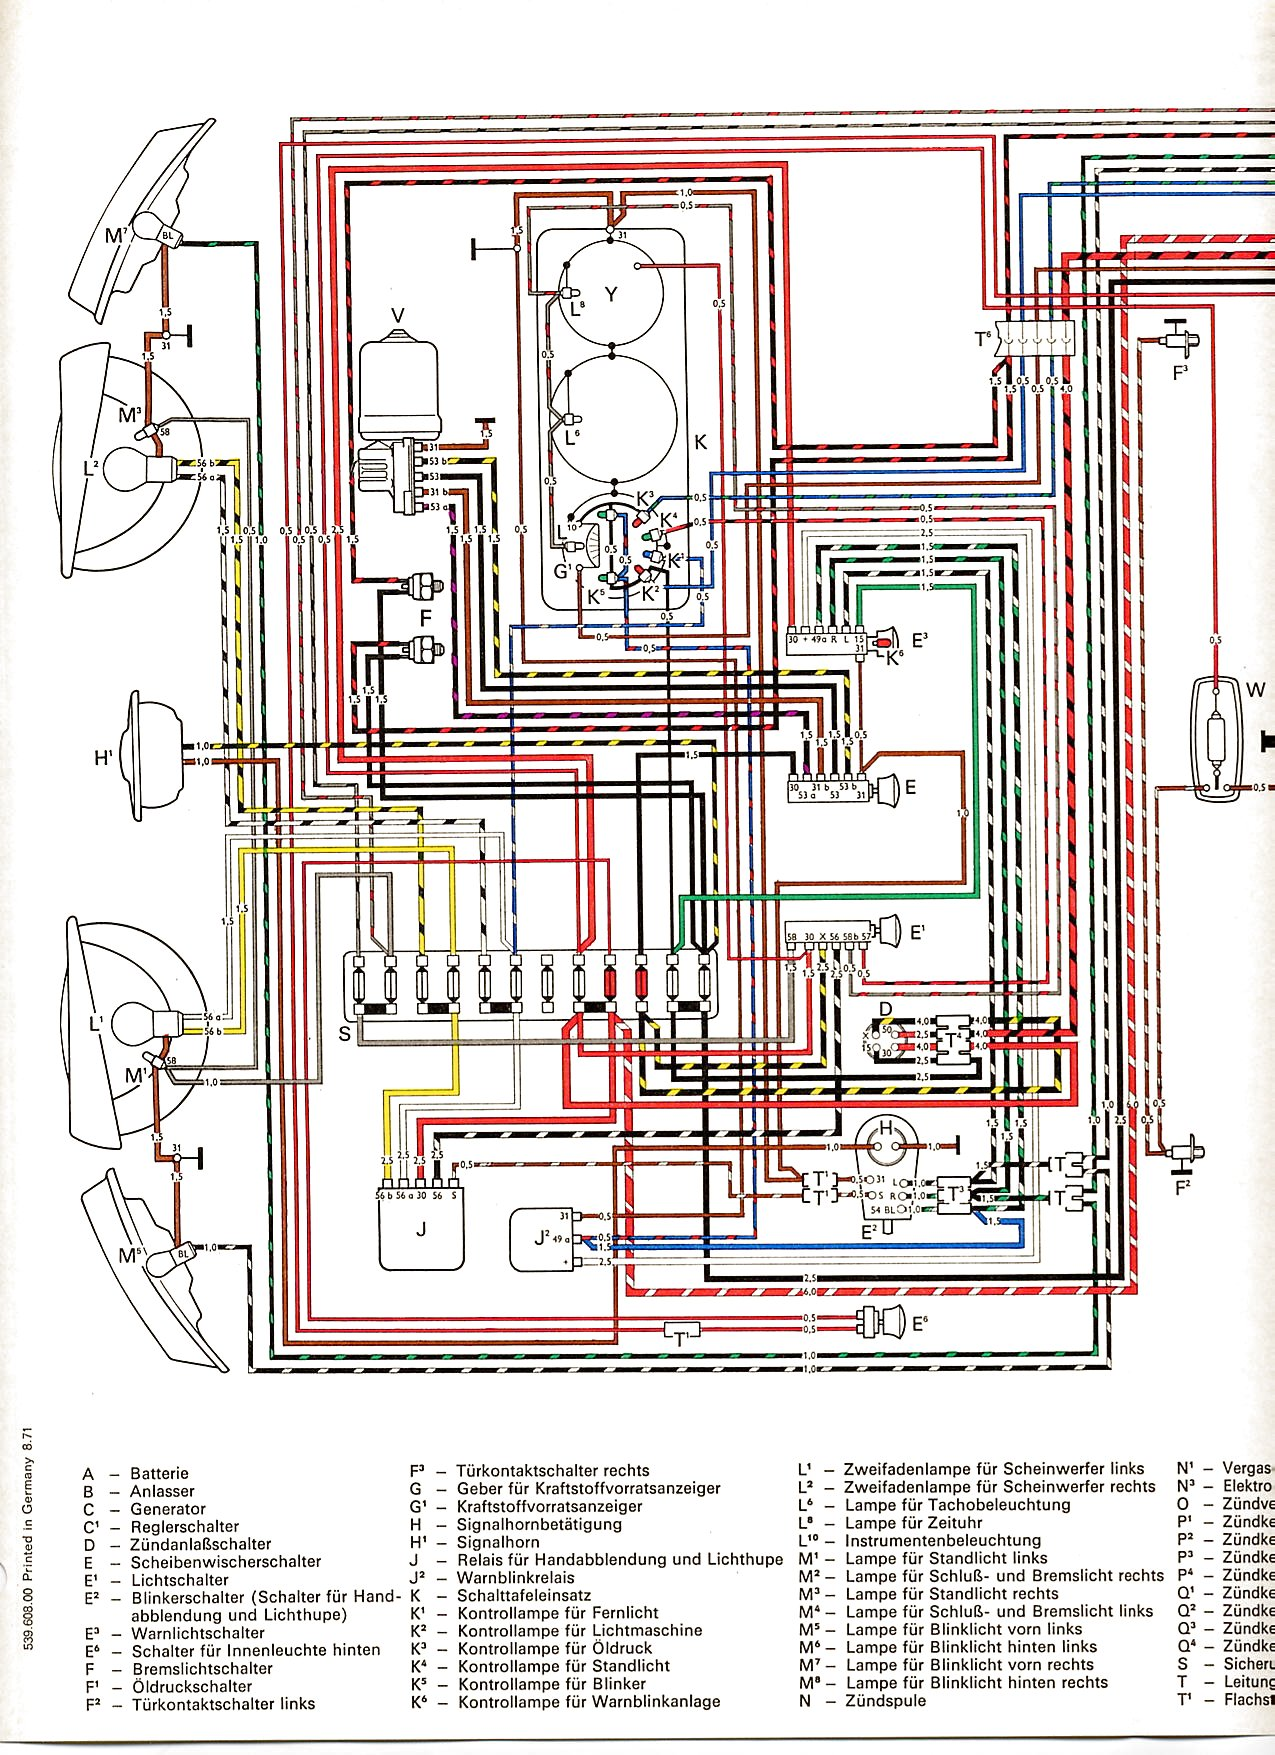 Wondrous 1975 Vw Type 2 Wiring Schematic Wiring Diagram Data Schema Wiring Cloud Geisbieswglorg